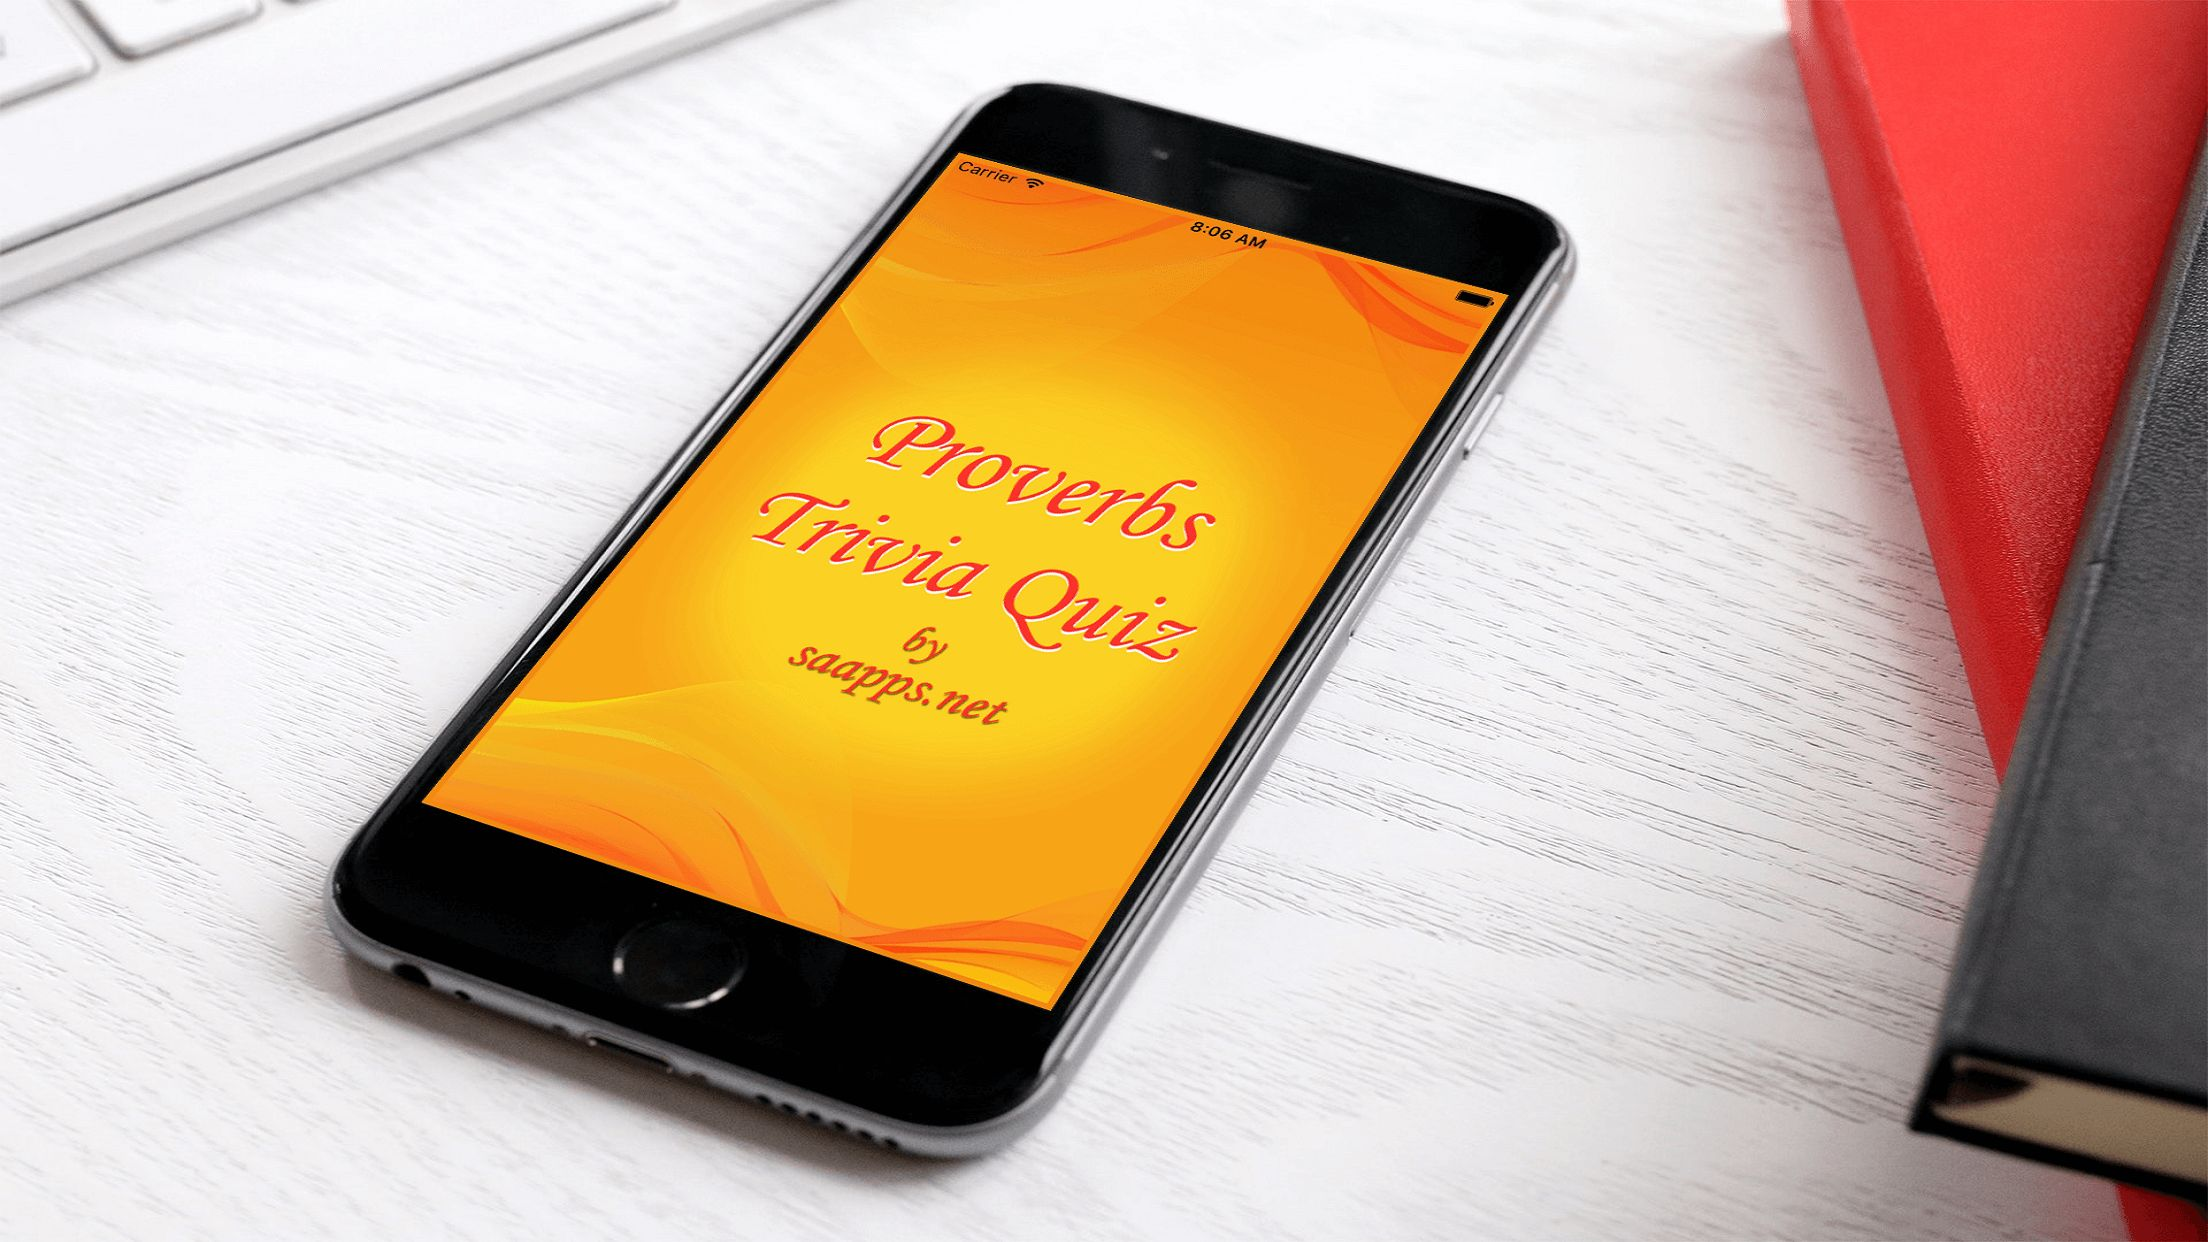 Proverbs Trivia Quiz - iOS Source Code Screenshot 9